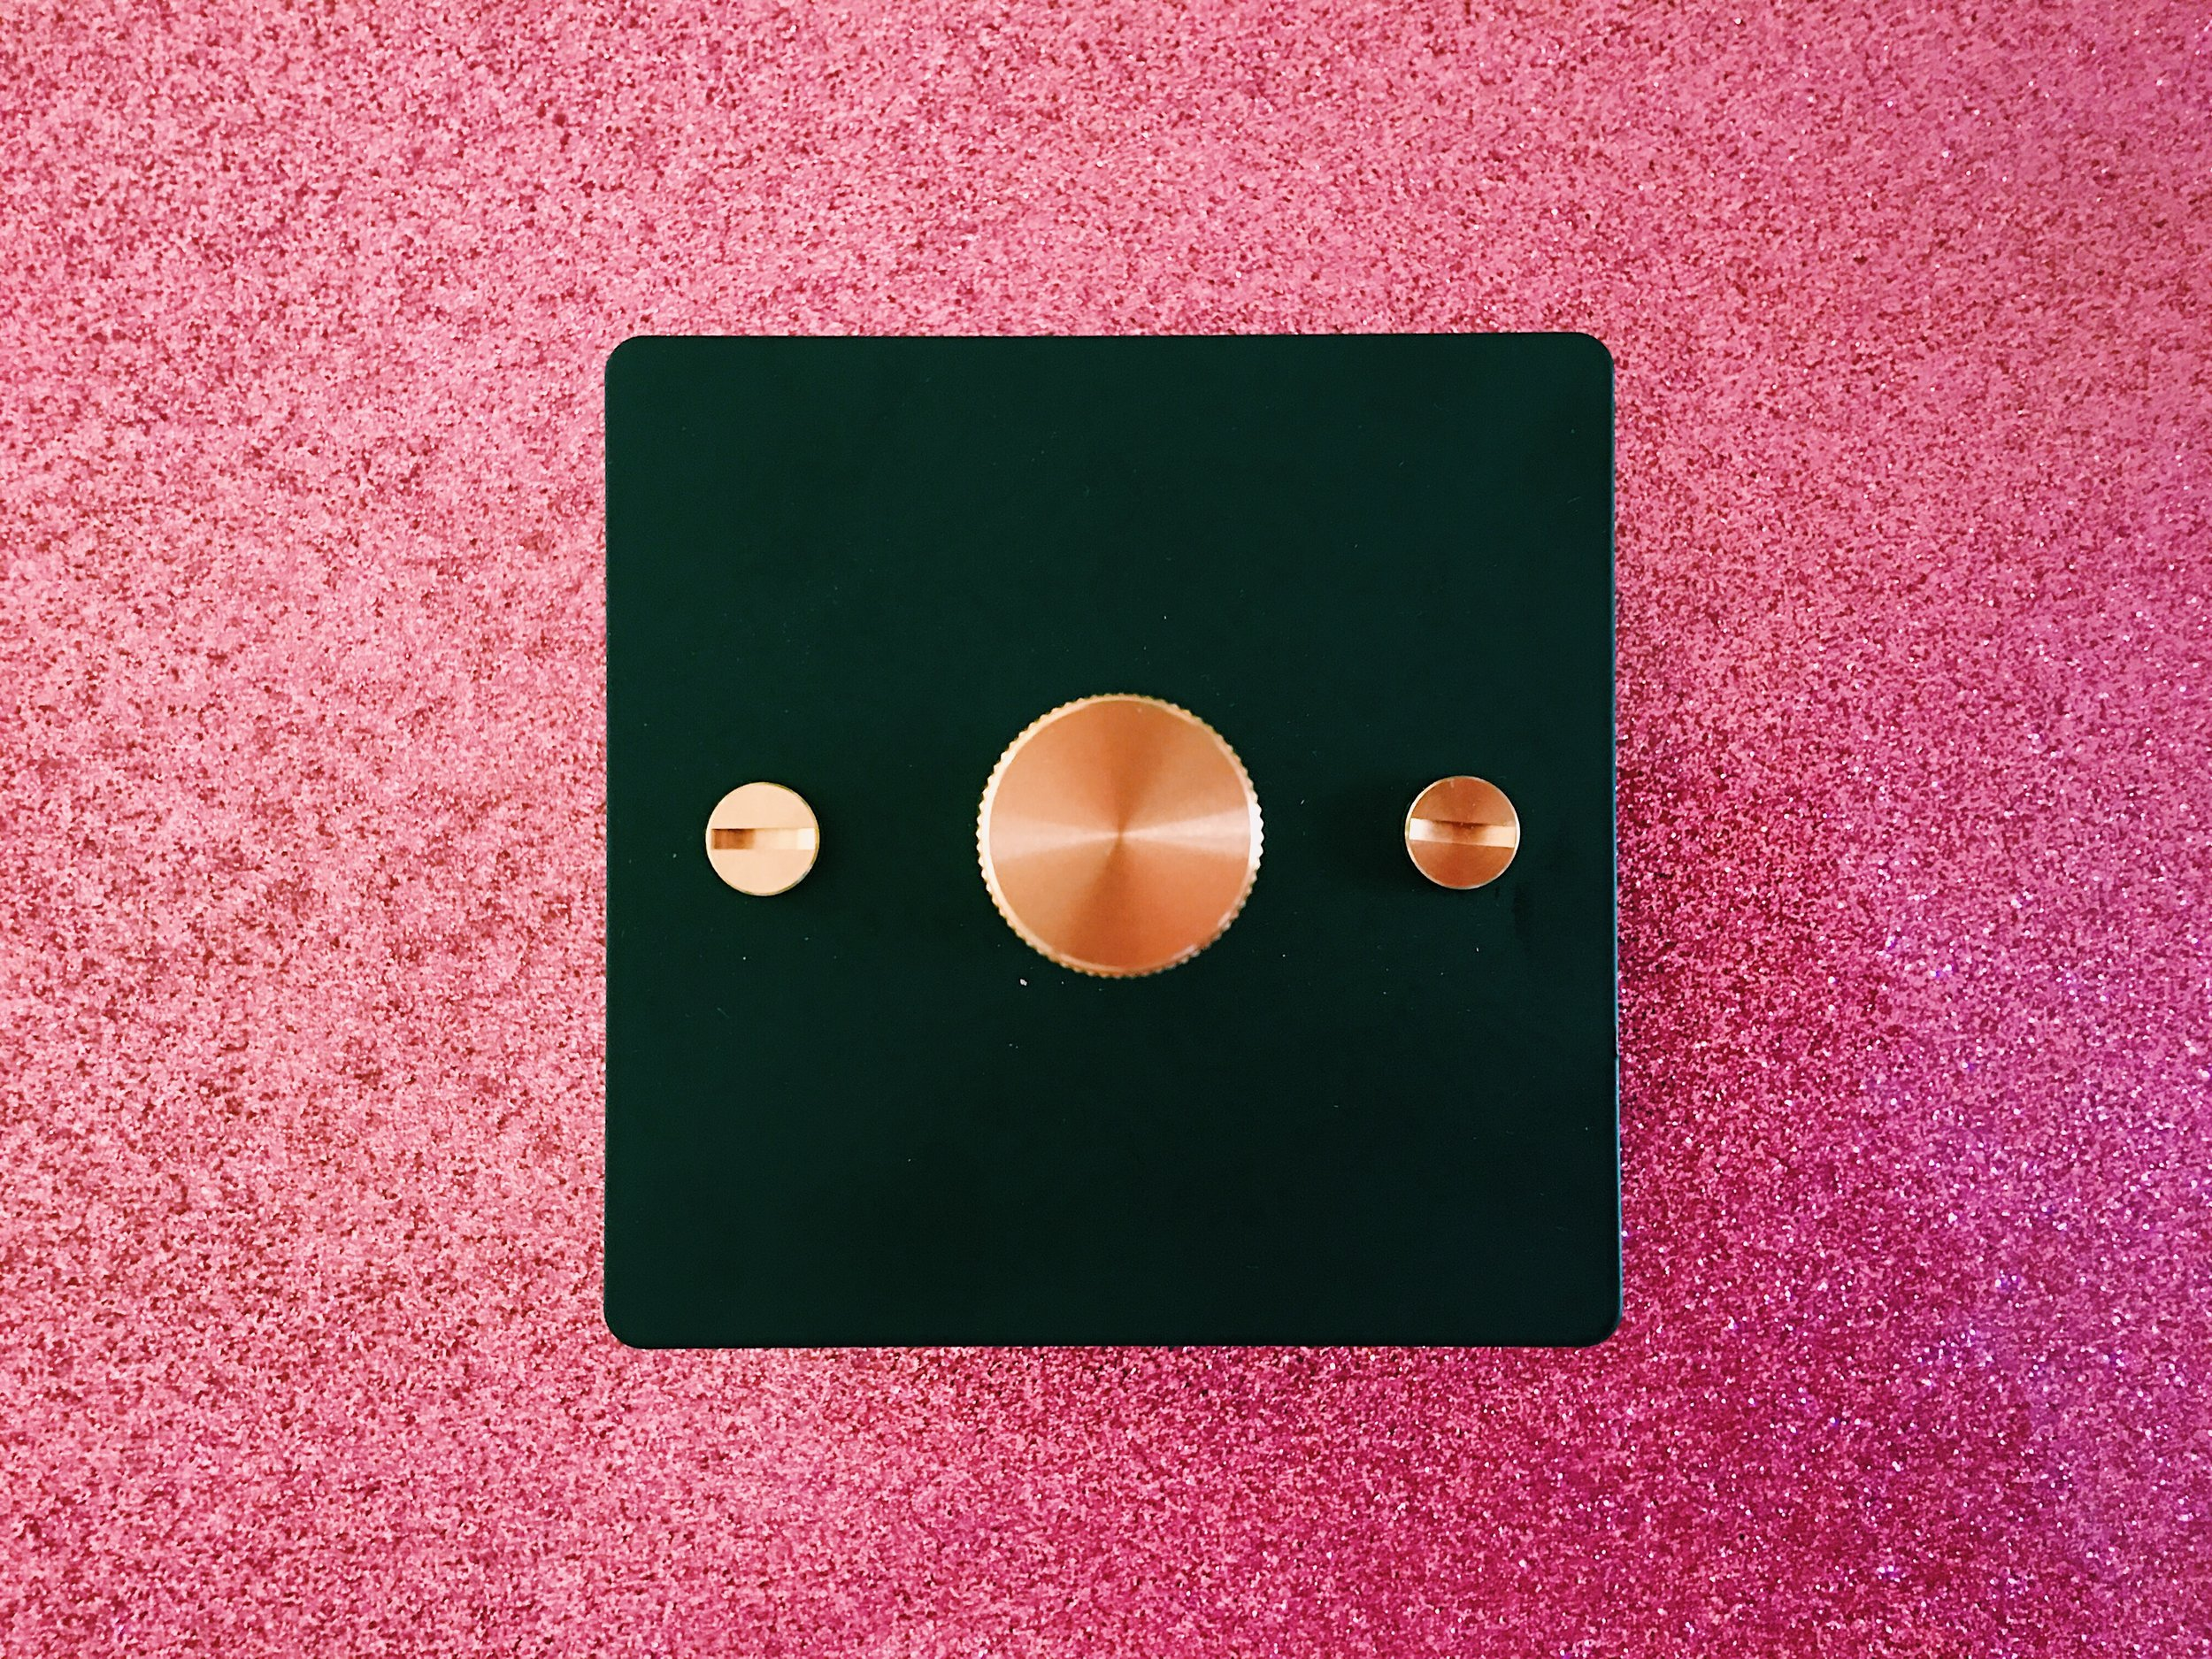 An Easy Guide On How To Change Over A Light Switch Plate — MELANIE